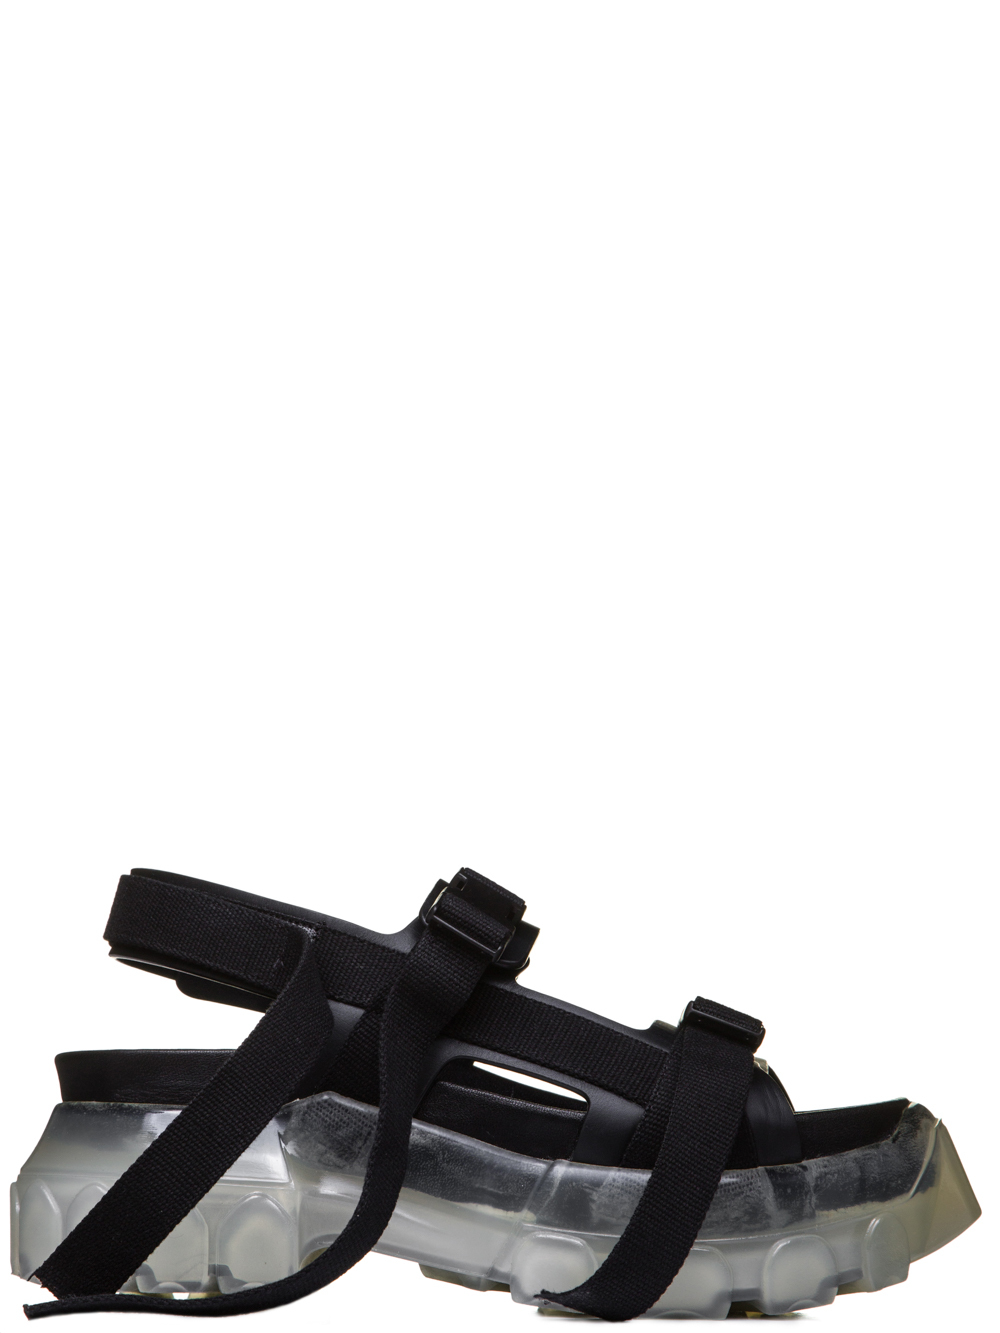 RICK OWENS SS19 BABEL TRACTOR SANDALS IN BLACK